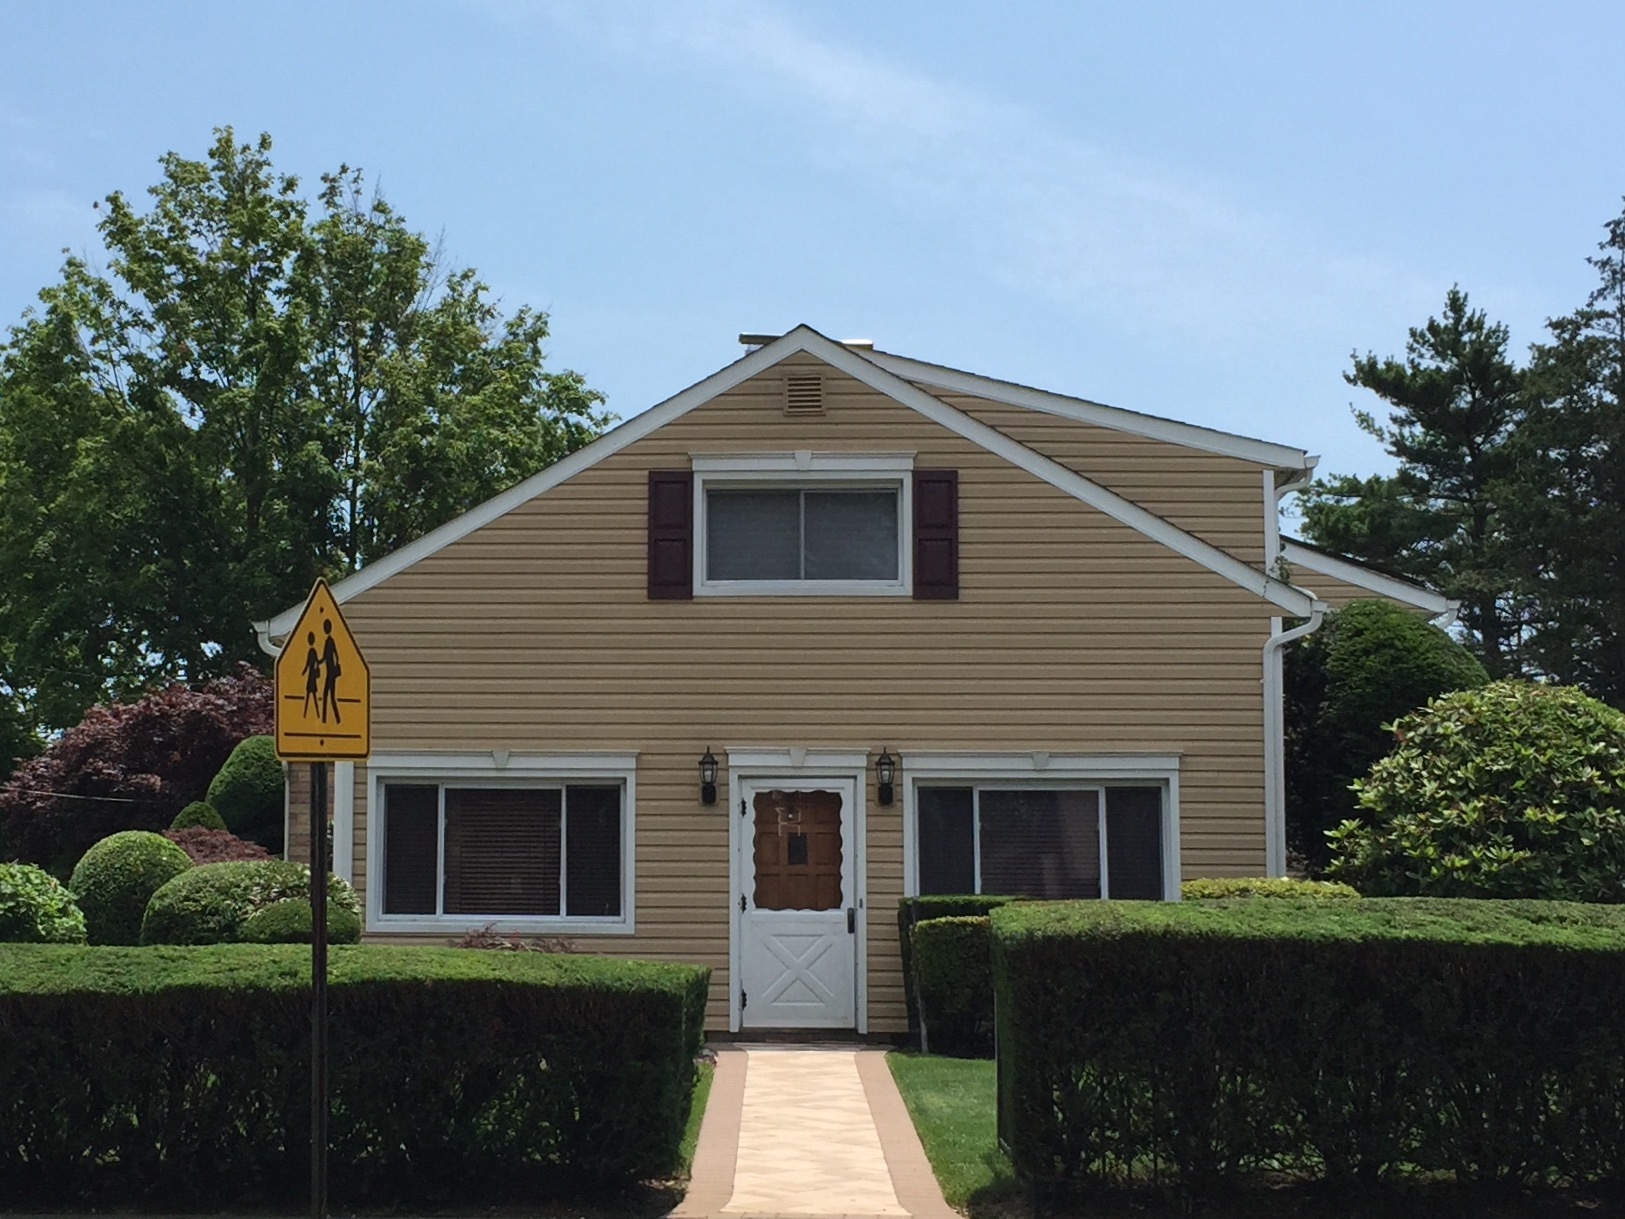 Model S1590 likewise B 507 r 7972 u c798b4 moreover Article 82633bc0 29bc 59a4 9615 A5b6b5d8e8fa together with Modern Cape Cod Craftsman Exterior Minneapolis also Whole House Remodels Philadelphia. on cape cod homes with stone